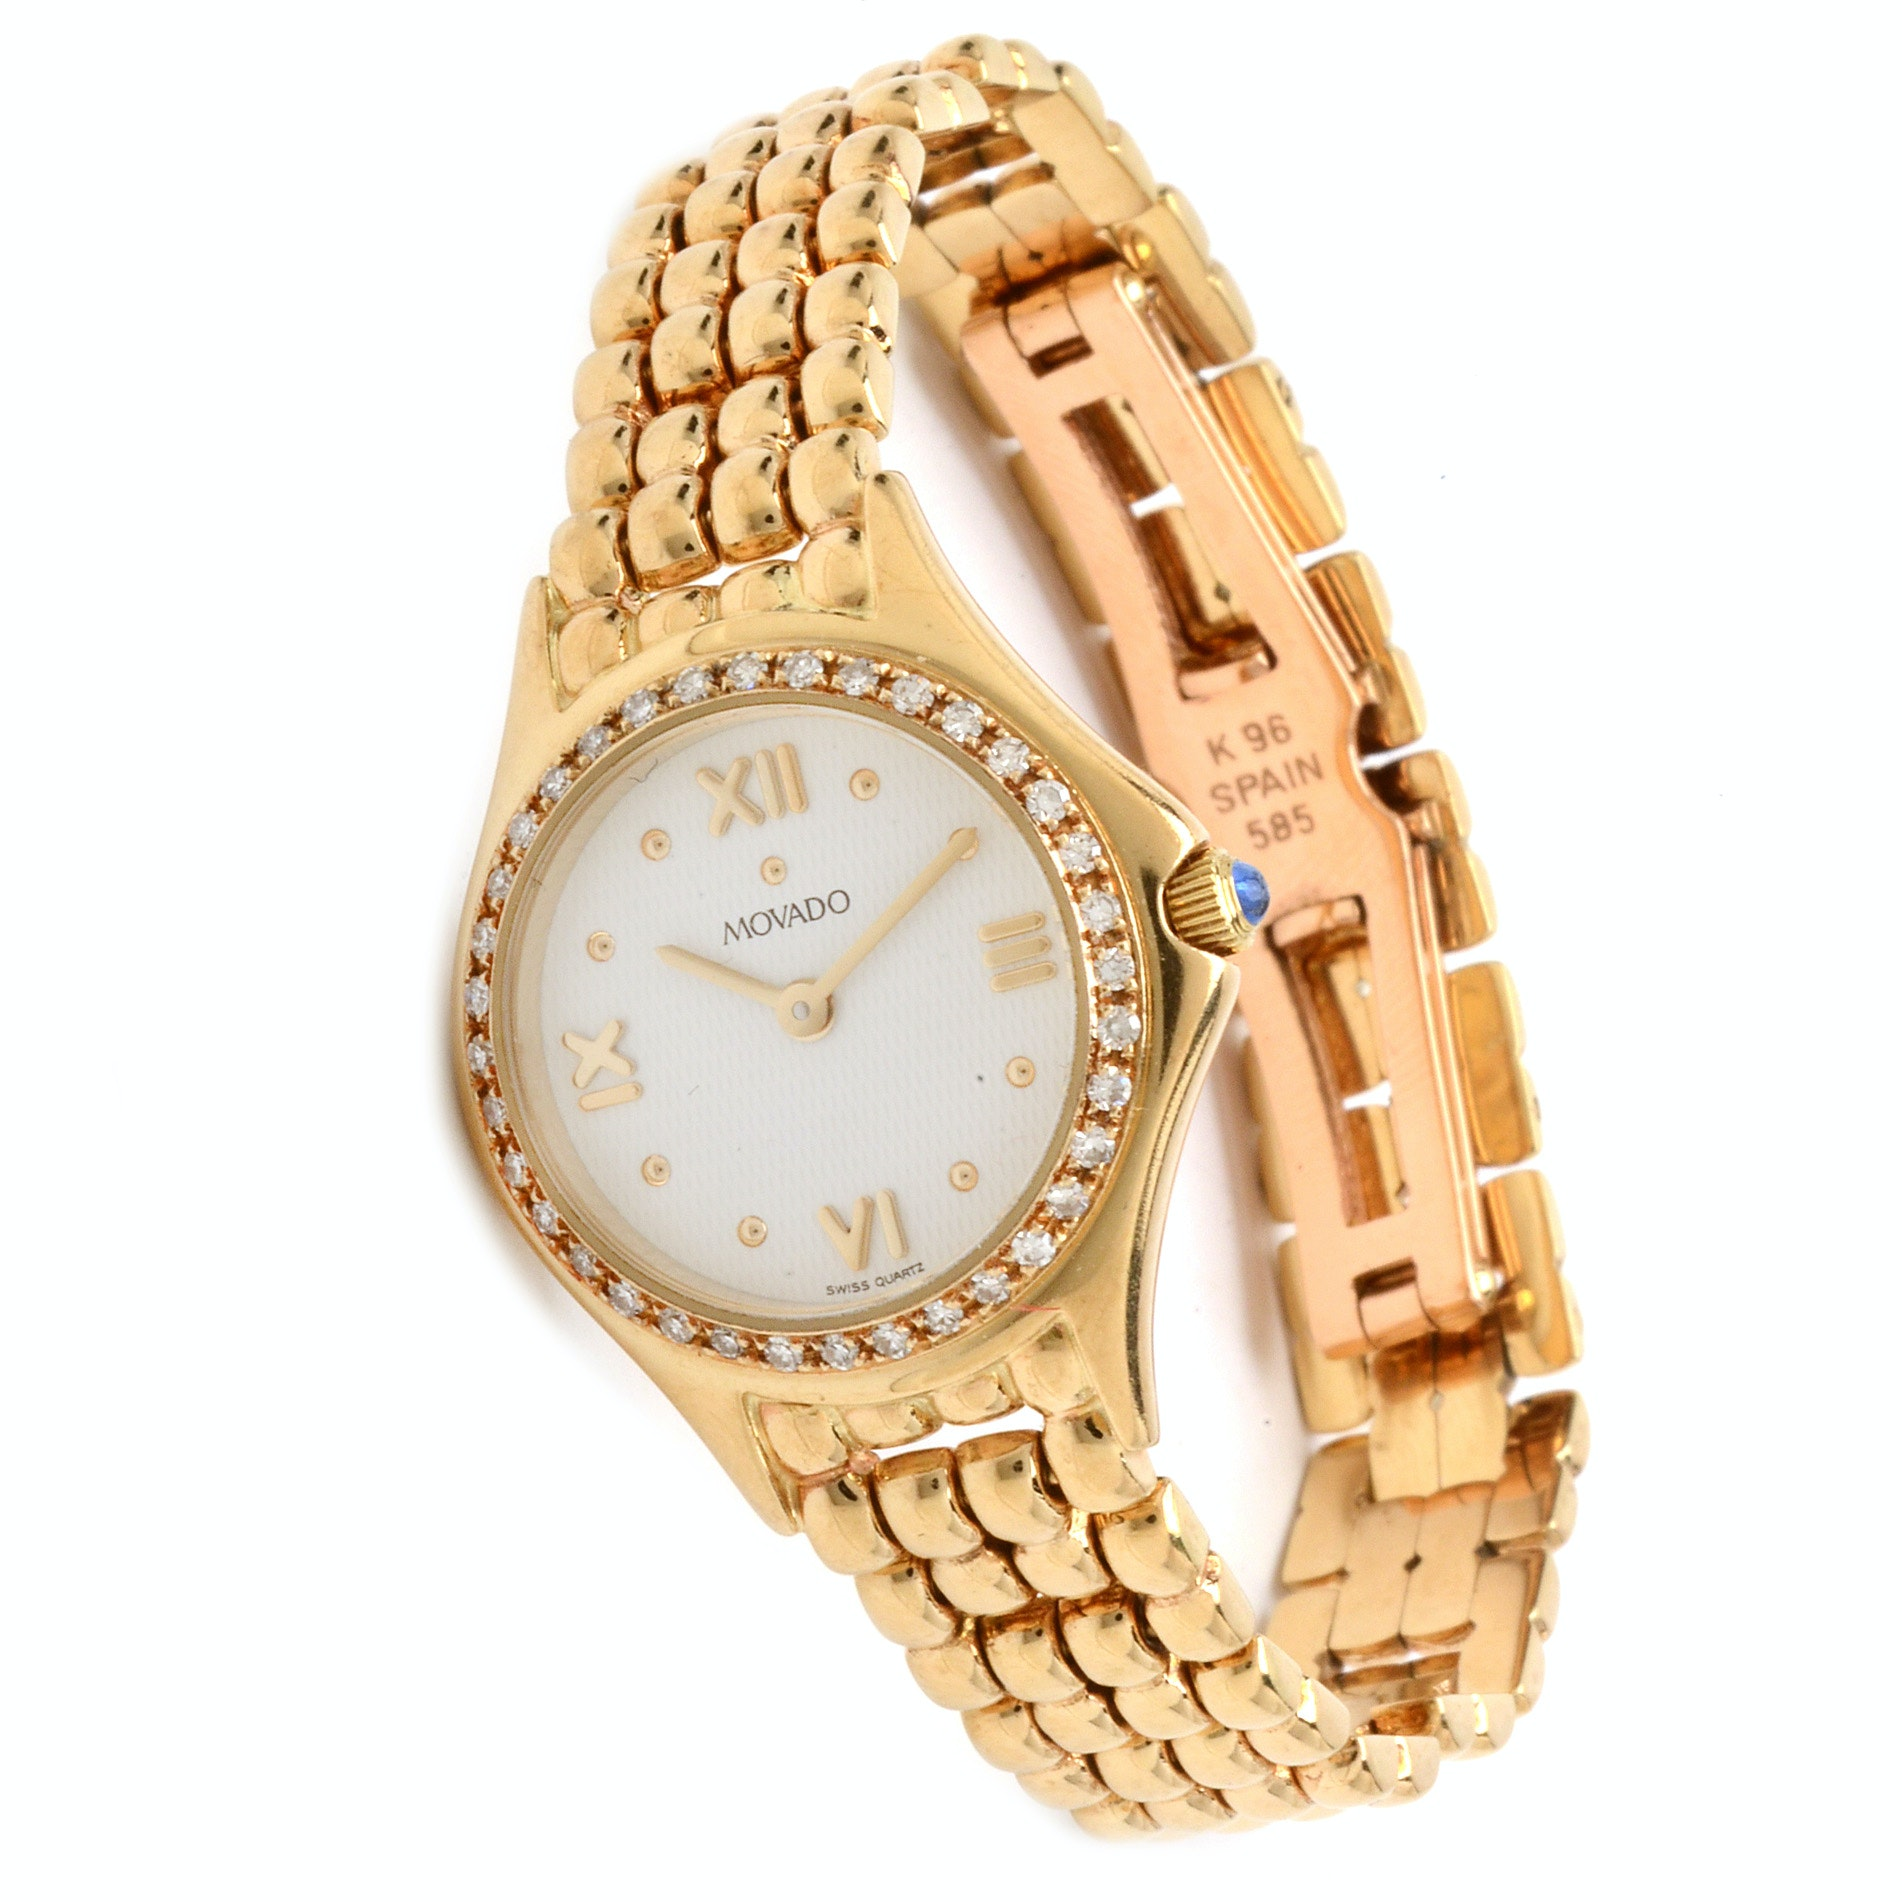 Movado 14K Yellow Gold and Diamond Watch